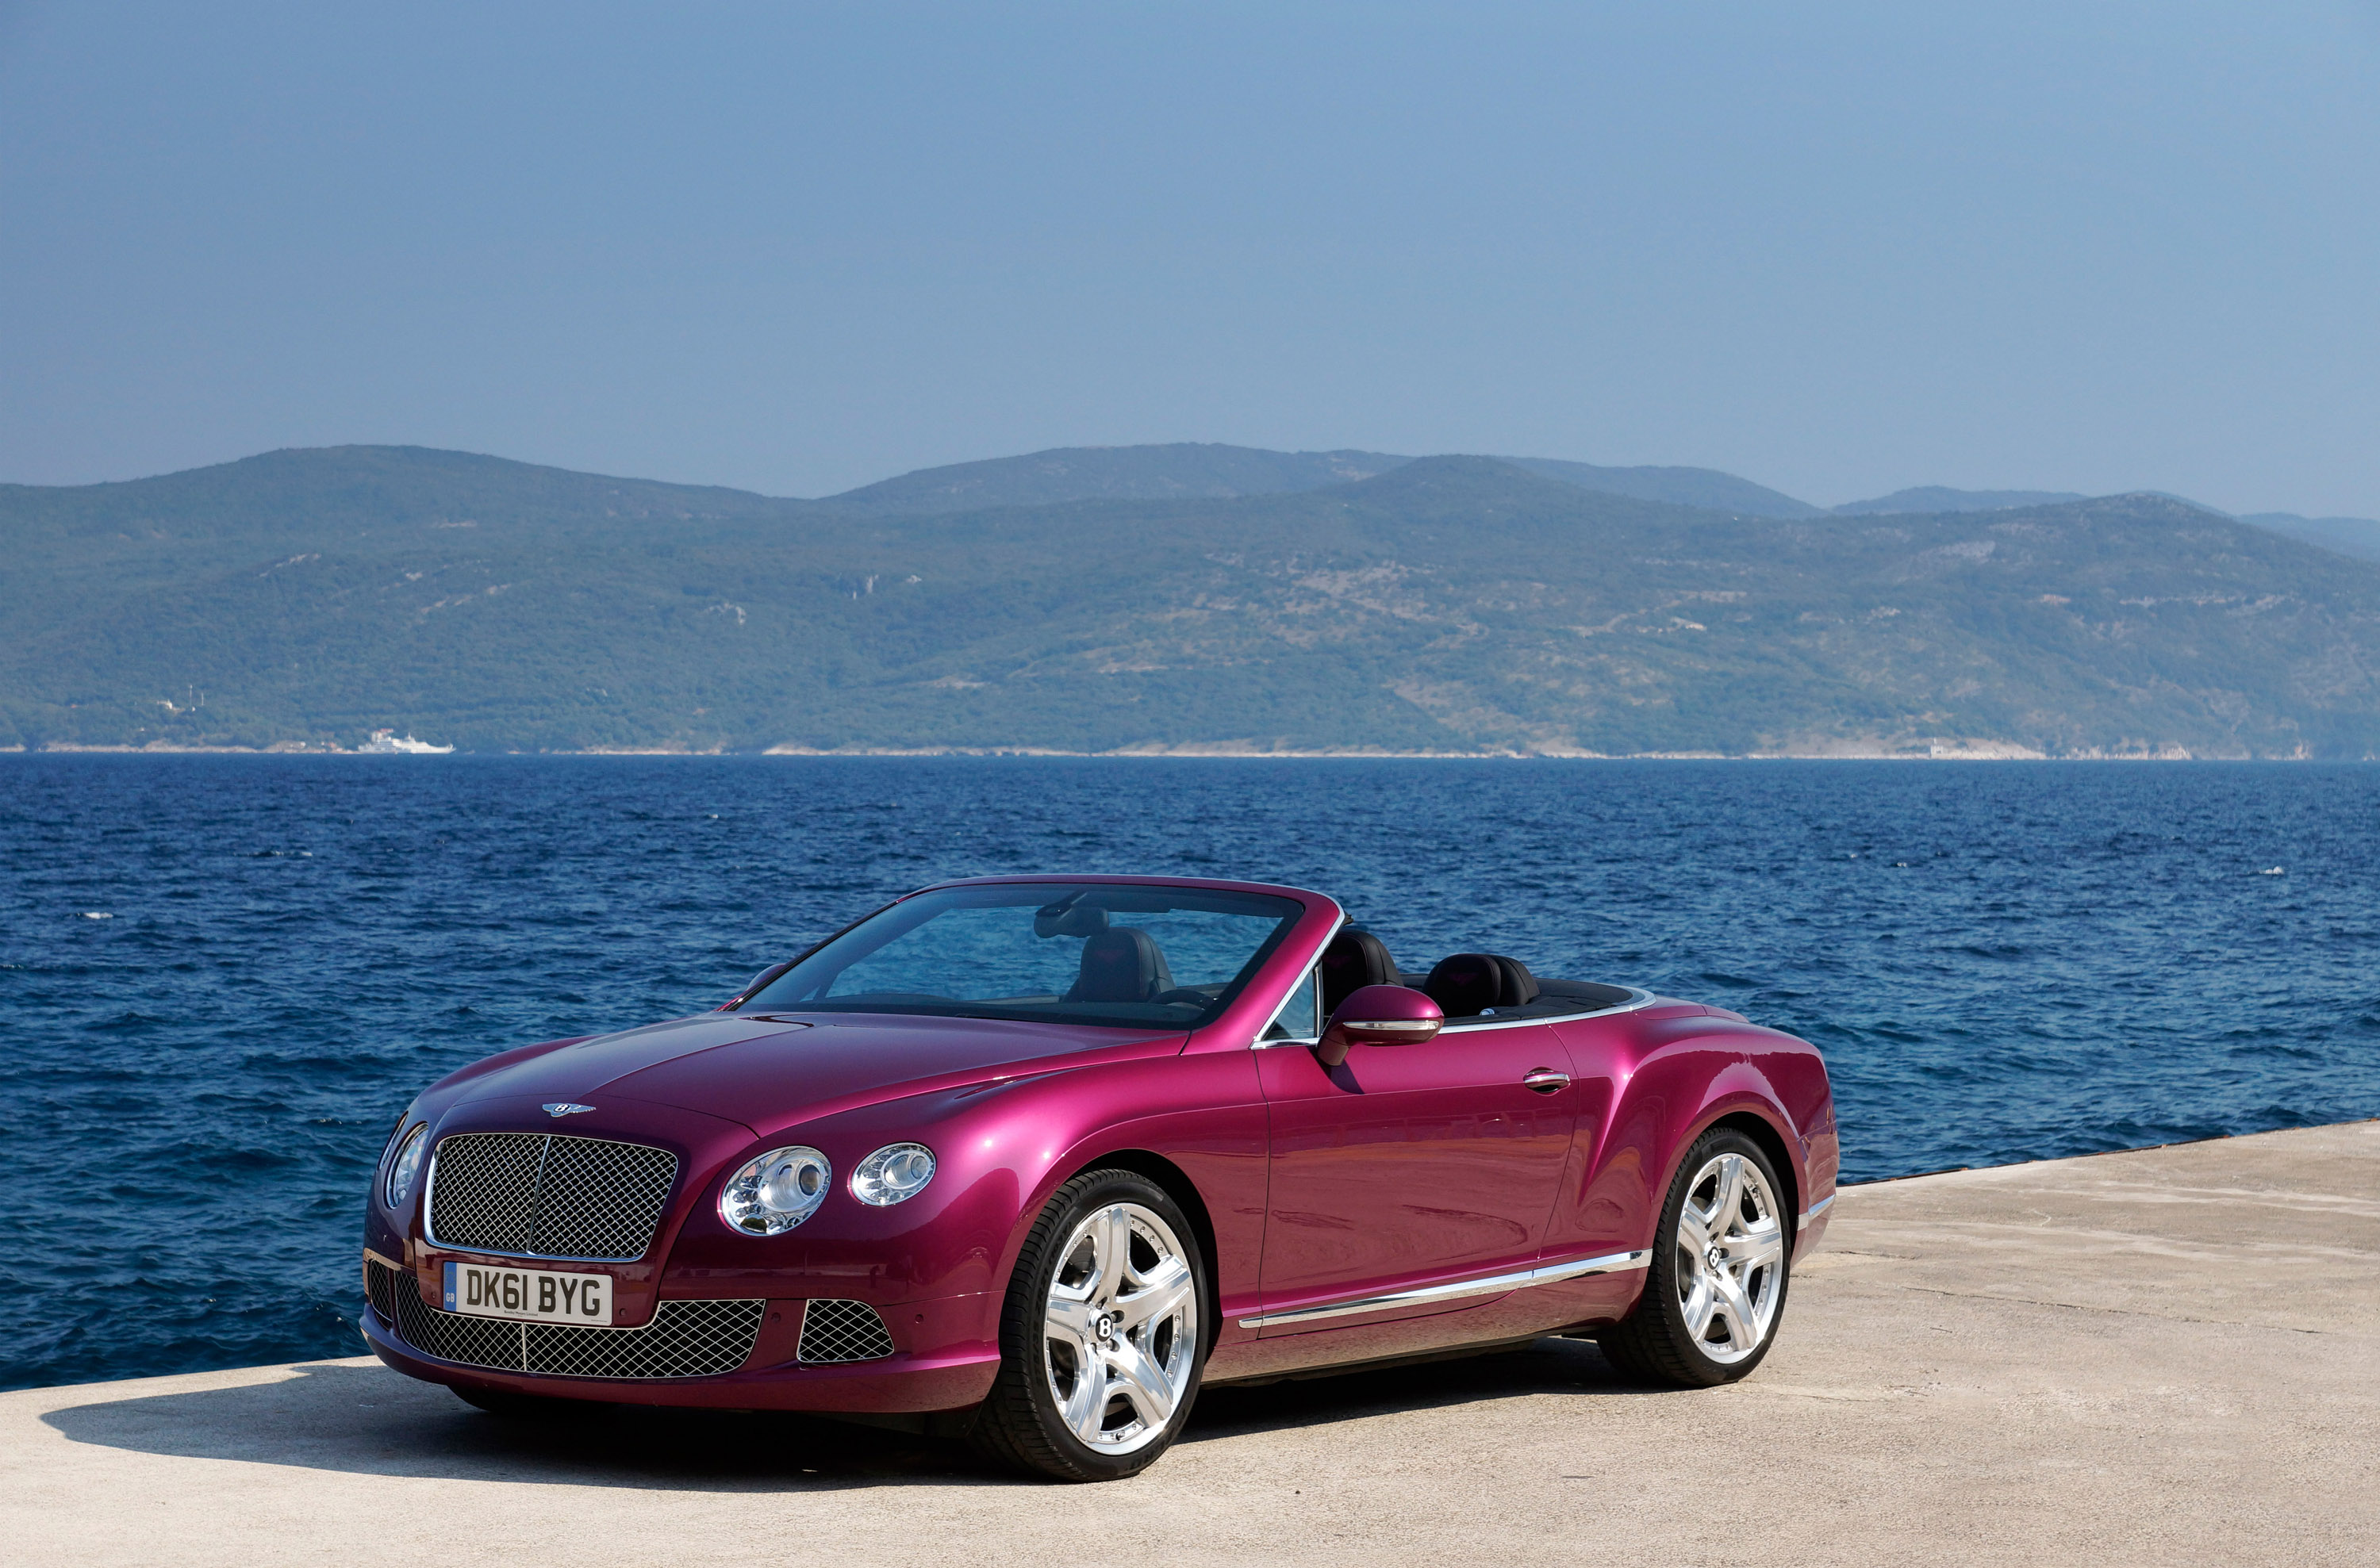 coupe reviews msrp bentley convertible gt news price continental